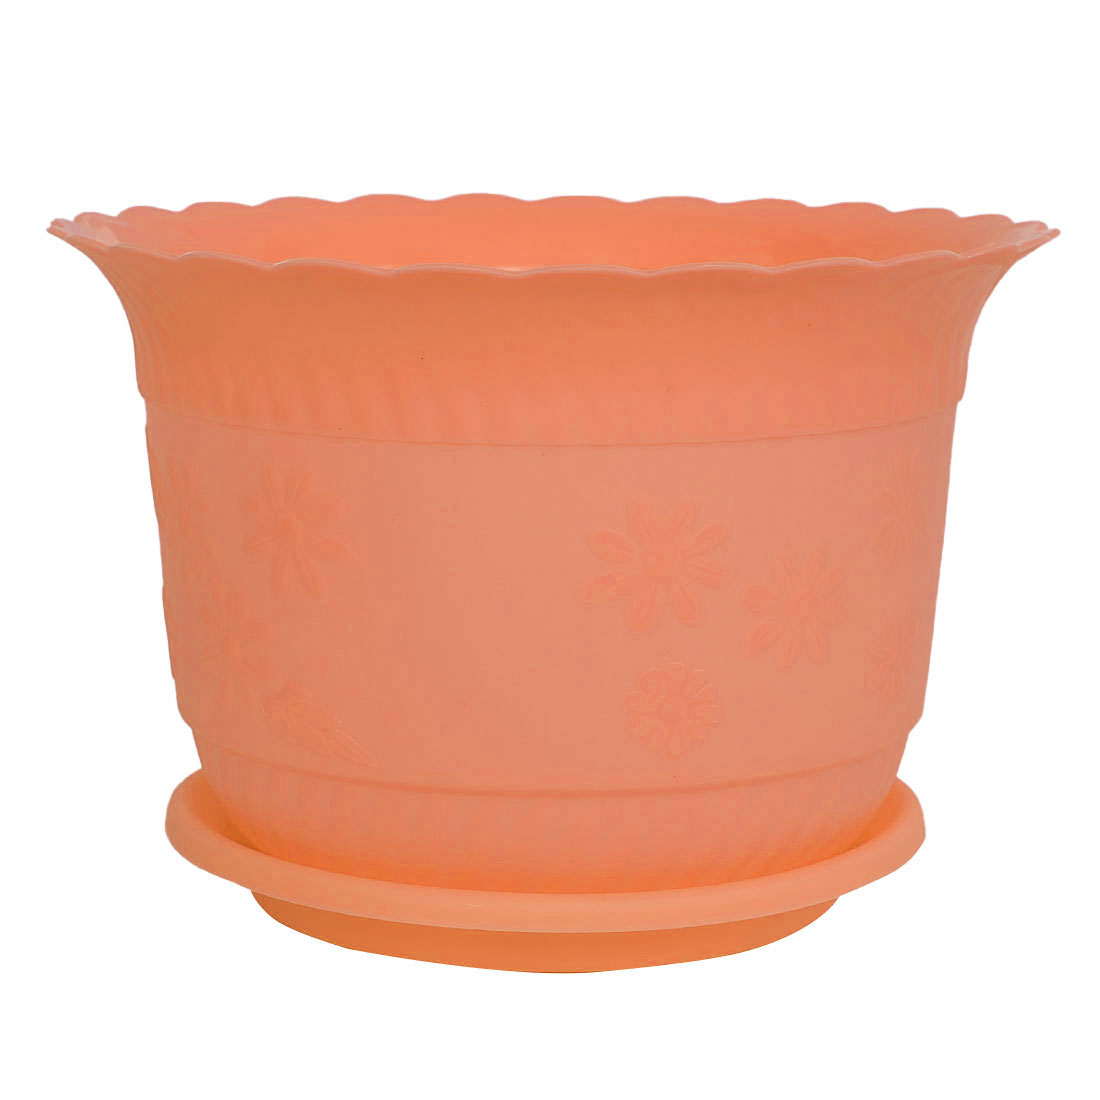 Home Office Garden Plastic Floral Pattern Plant Flower Pot Orange 23cm Diameter